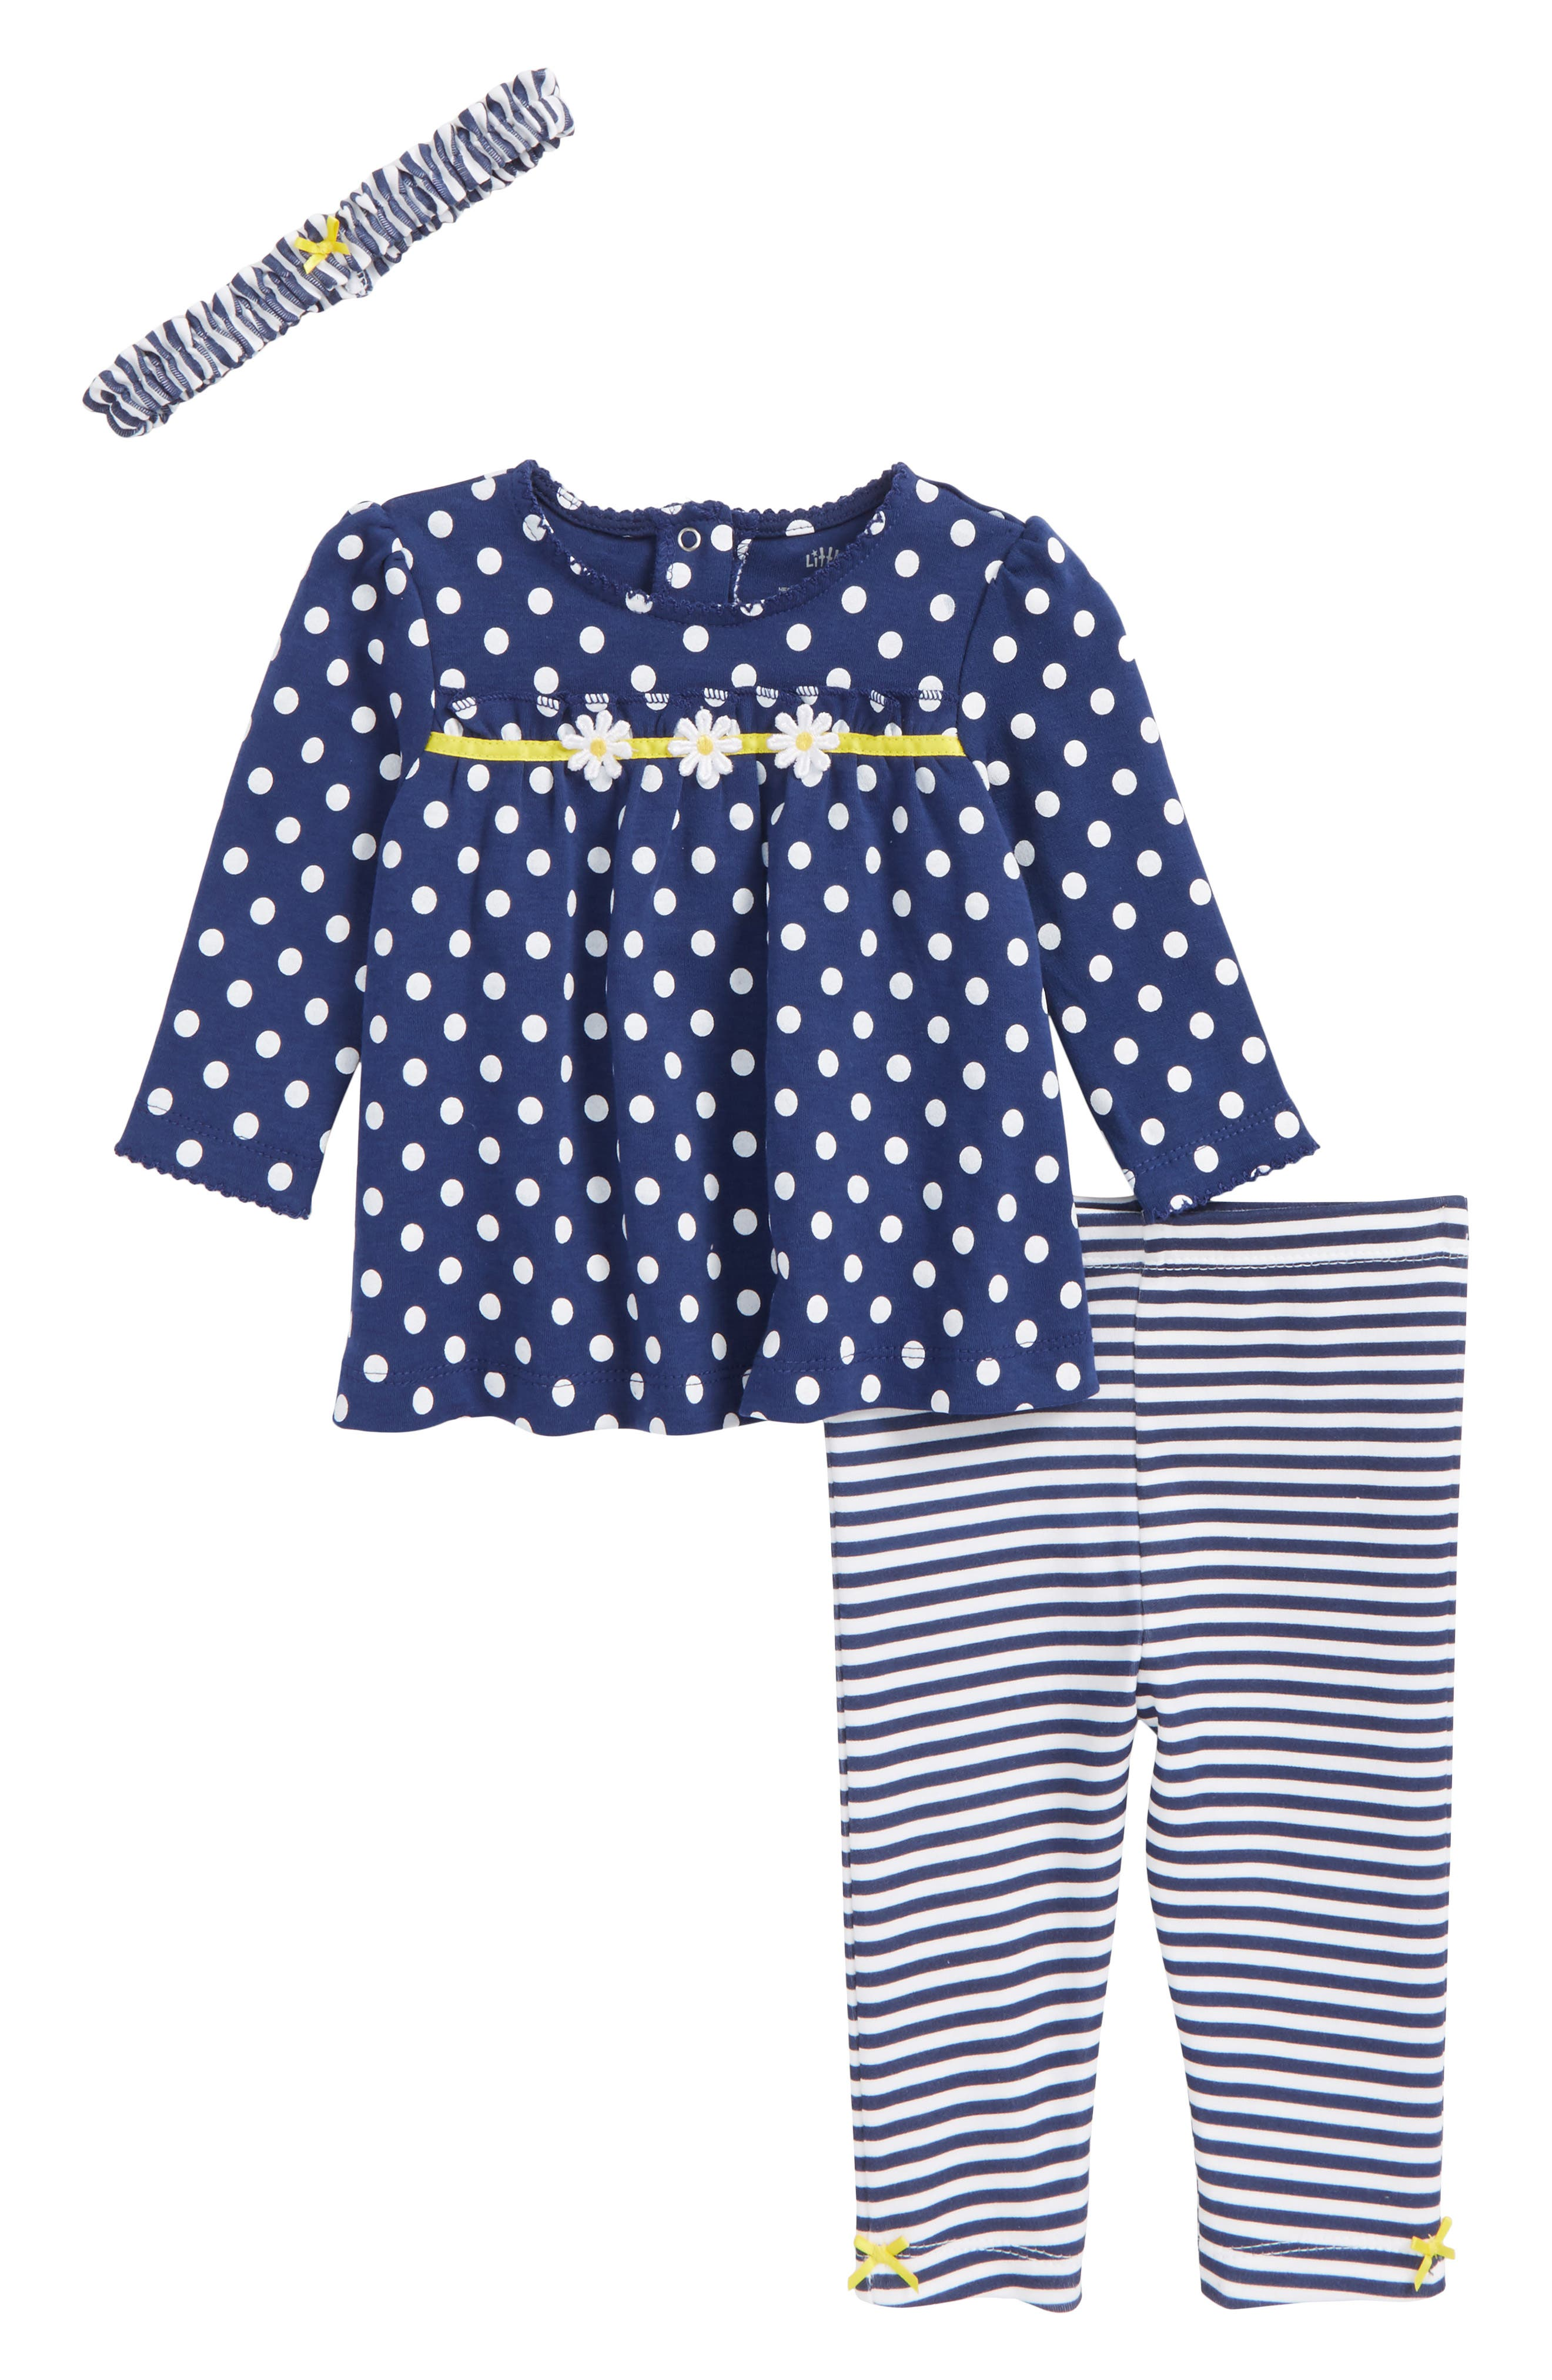 Main Image - Little Me Daisy Tunic, Leggings & Headband Set (Baby Girls)